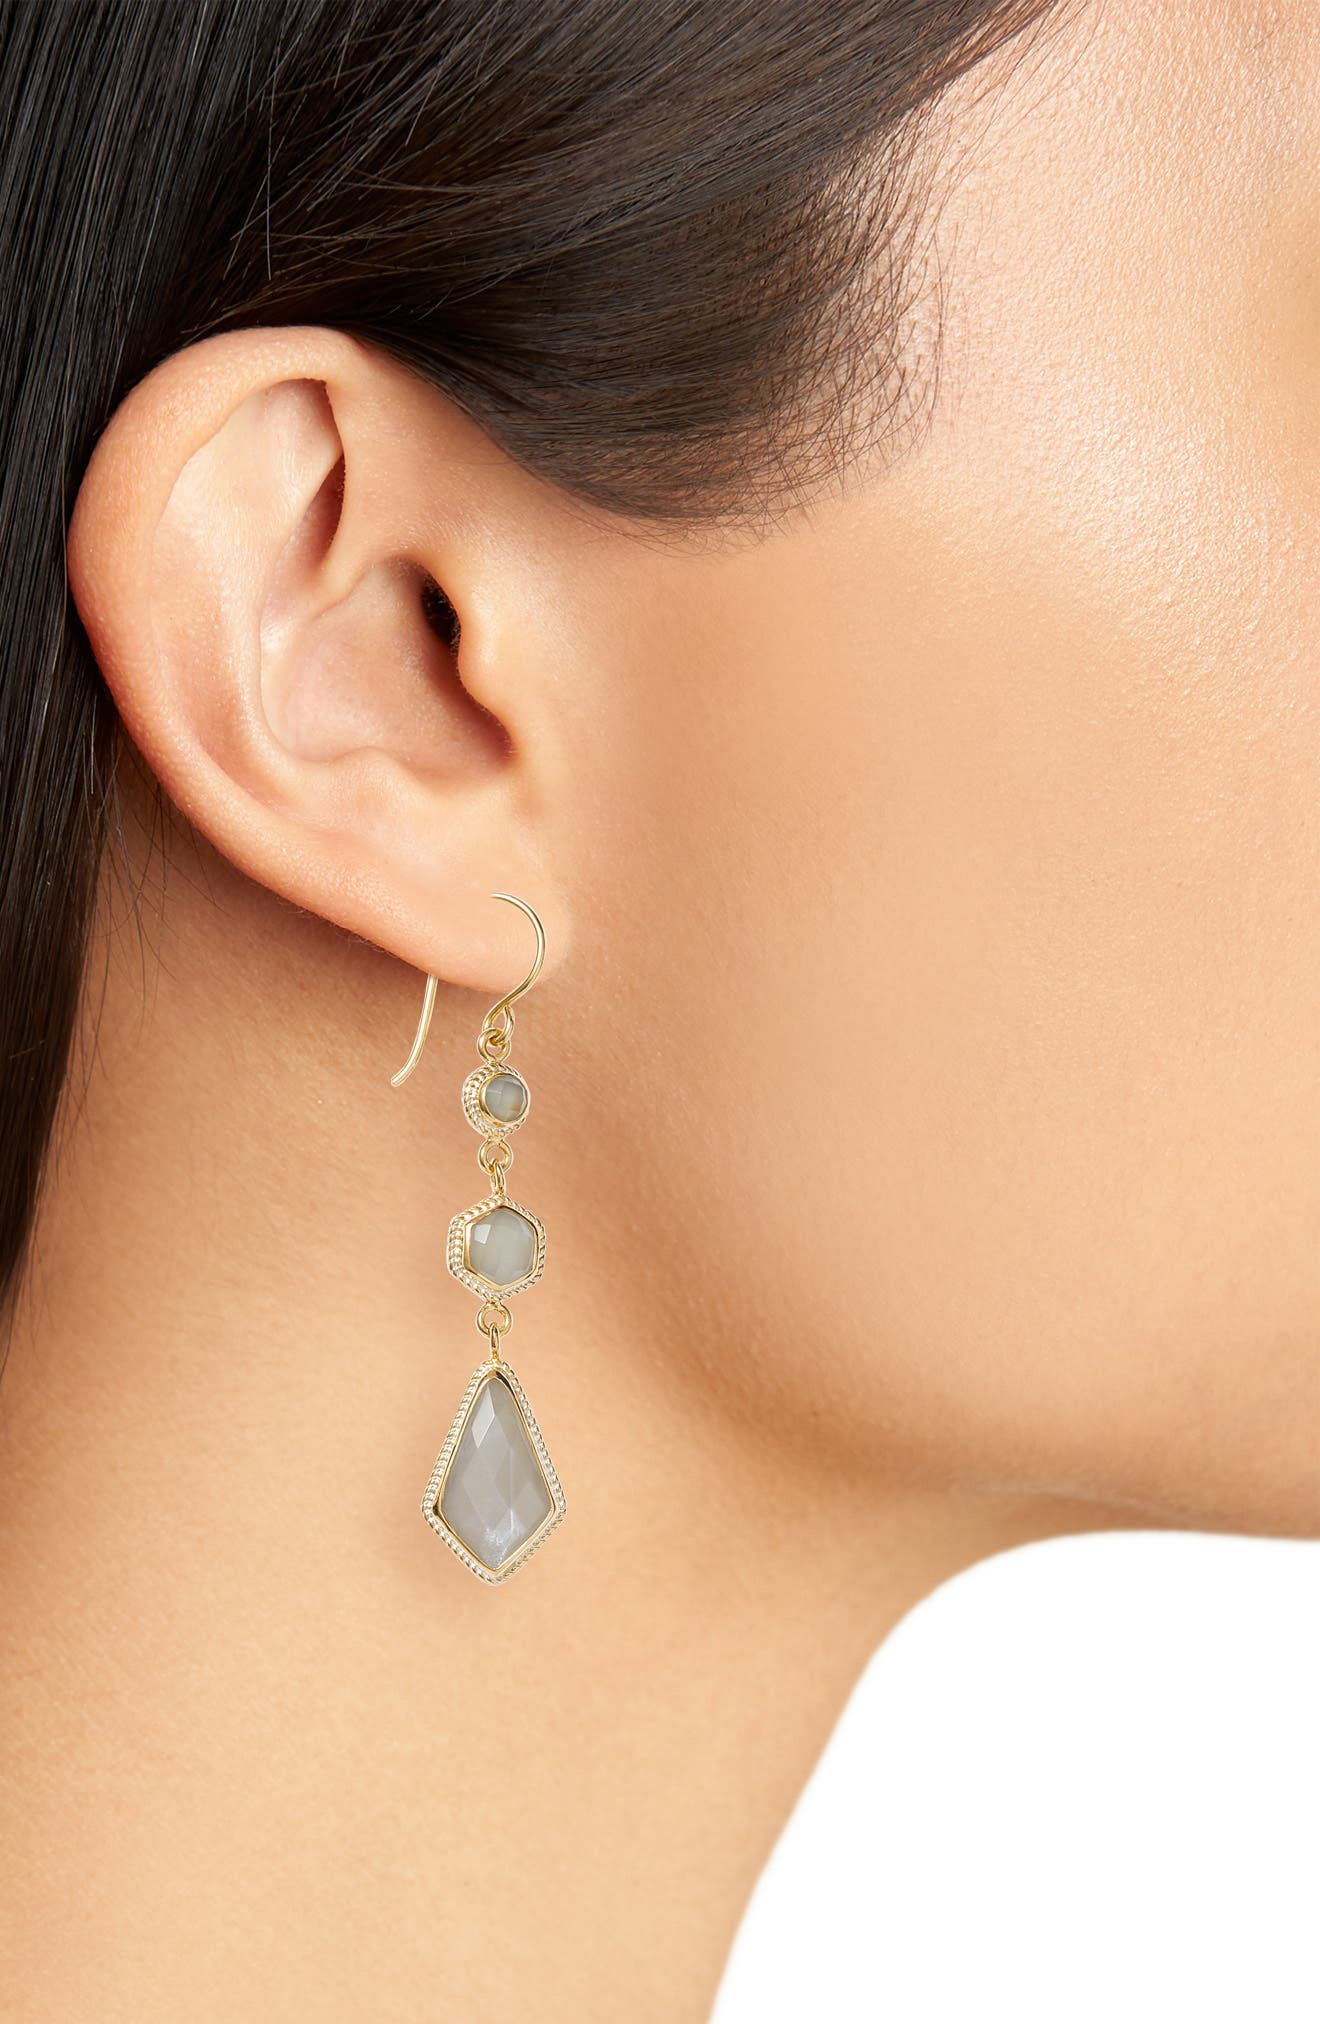 Grey Moonstone Linear Drop Earrings,                             Alternate thumbnail 2, color,                             Gold/ Grey Moonstone